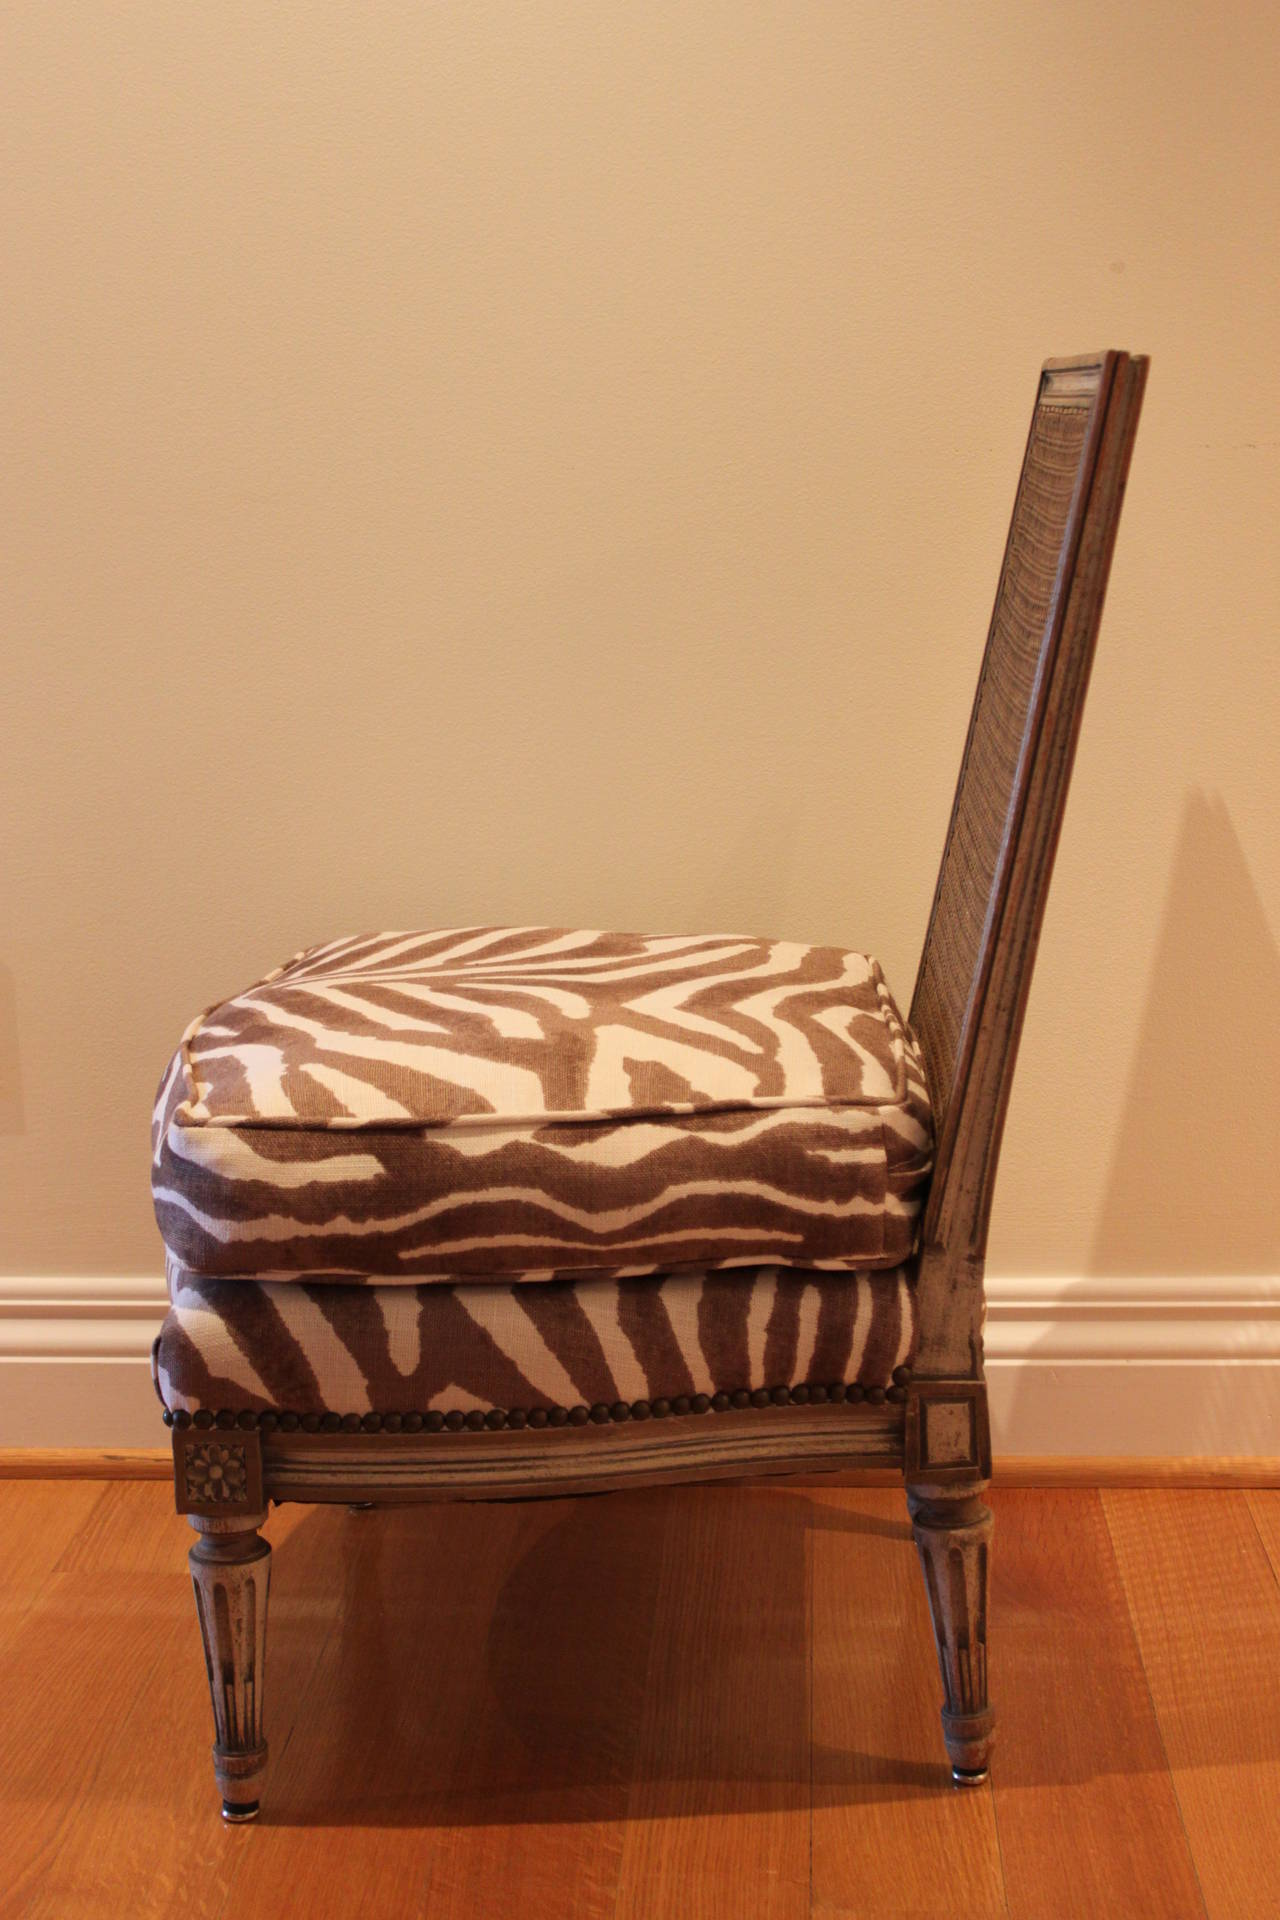 Elegant Louis XVI Style Slipper Chair Or Chauffeuse With A Caned Back And An  Upholstered Seat With